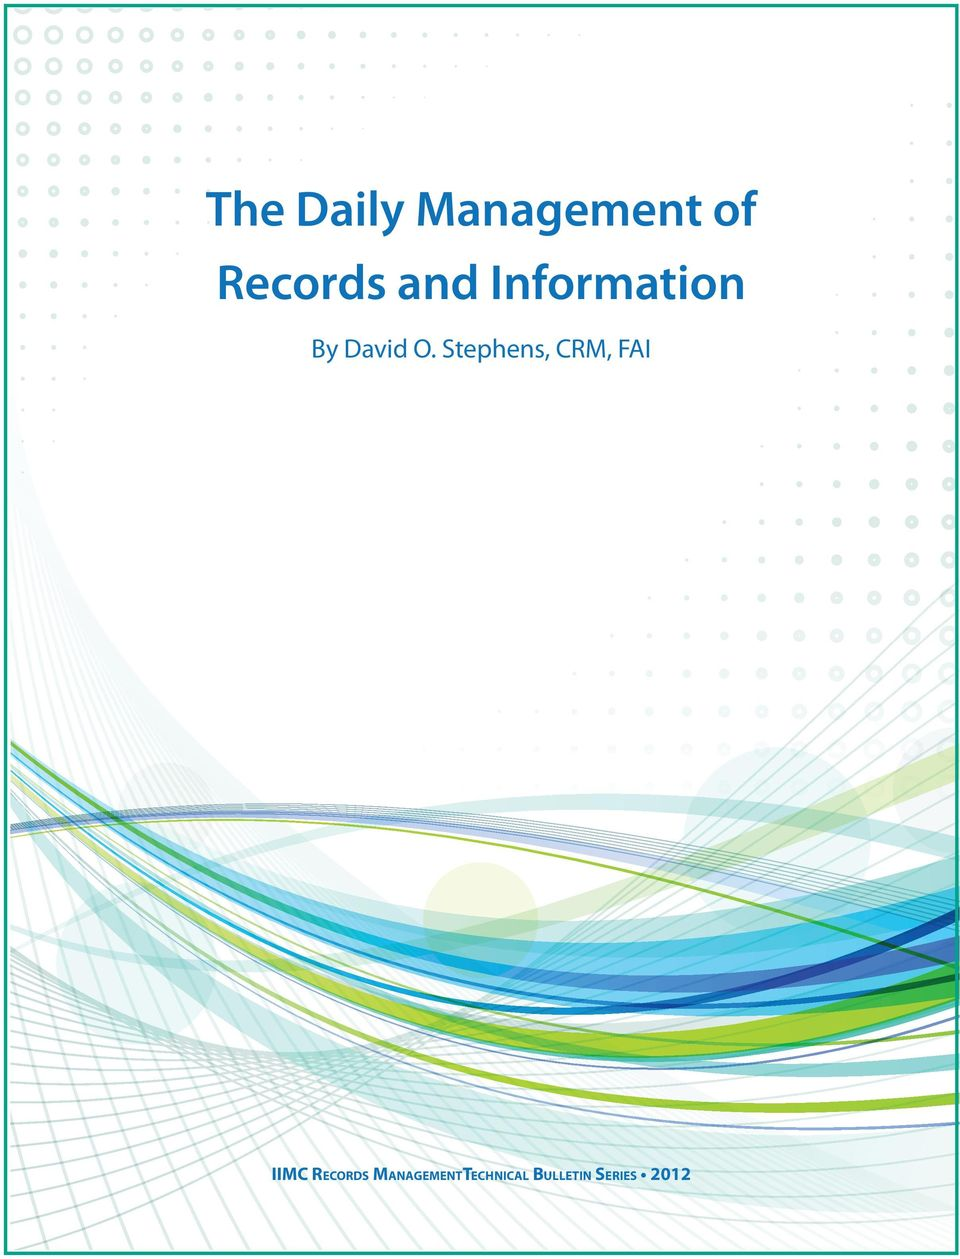 Stephens, CRM, FAI IIMC Records